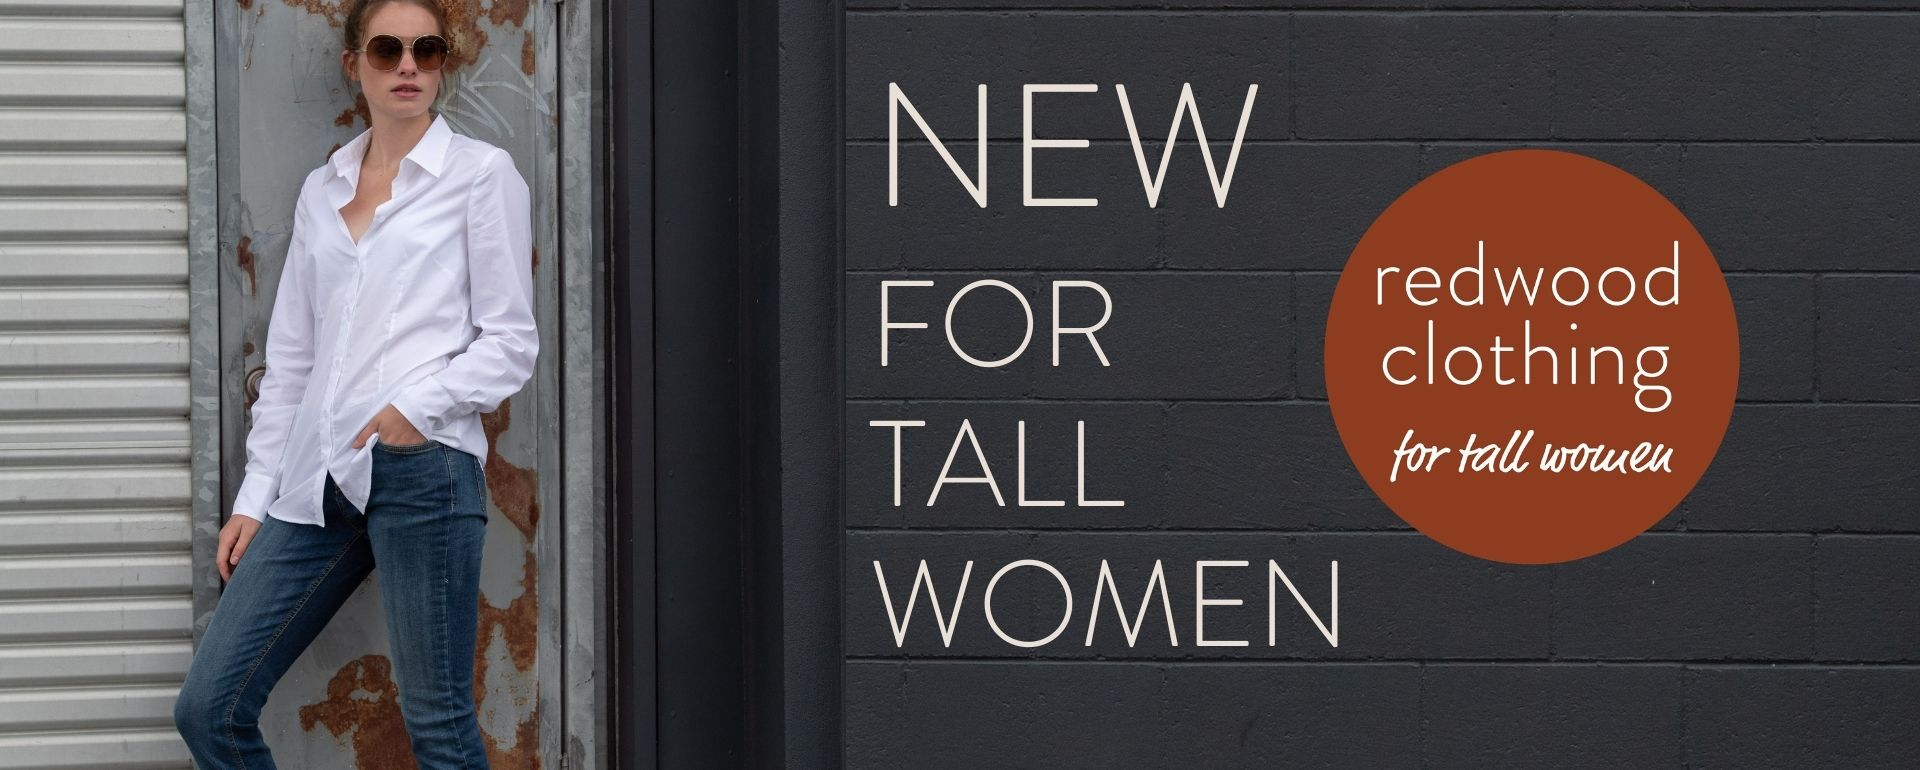 Redwood Clothing For Tall Women